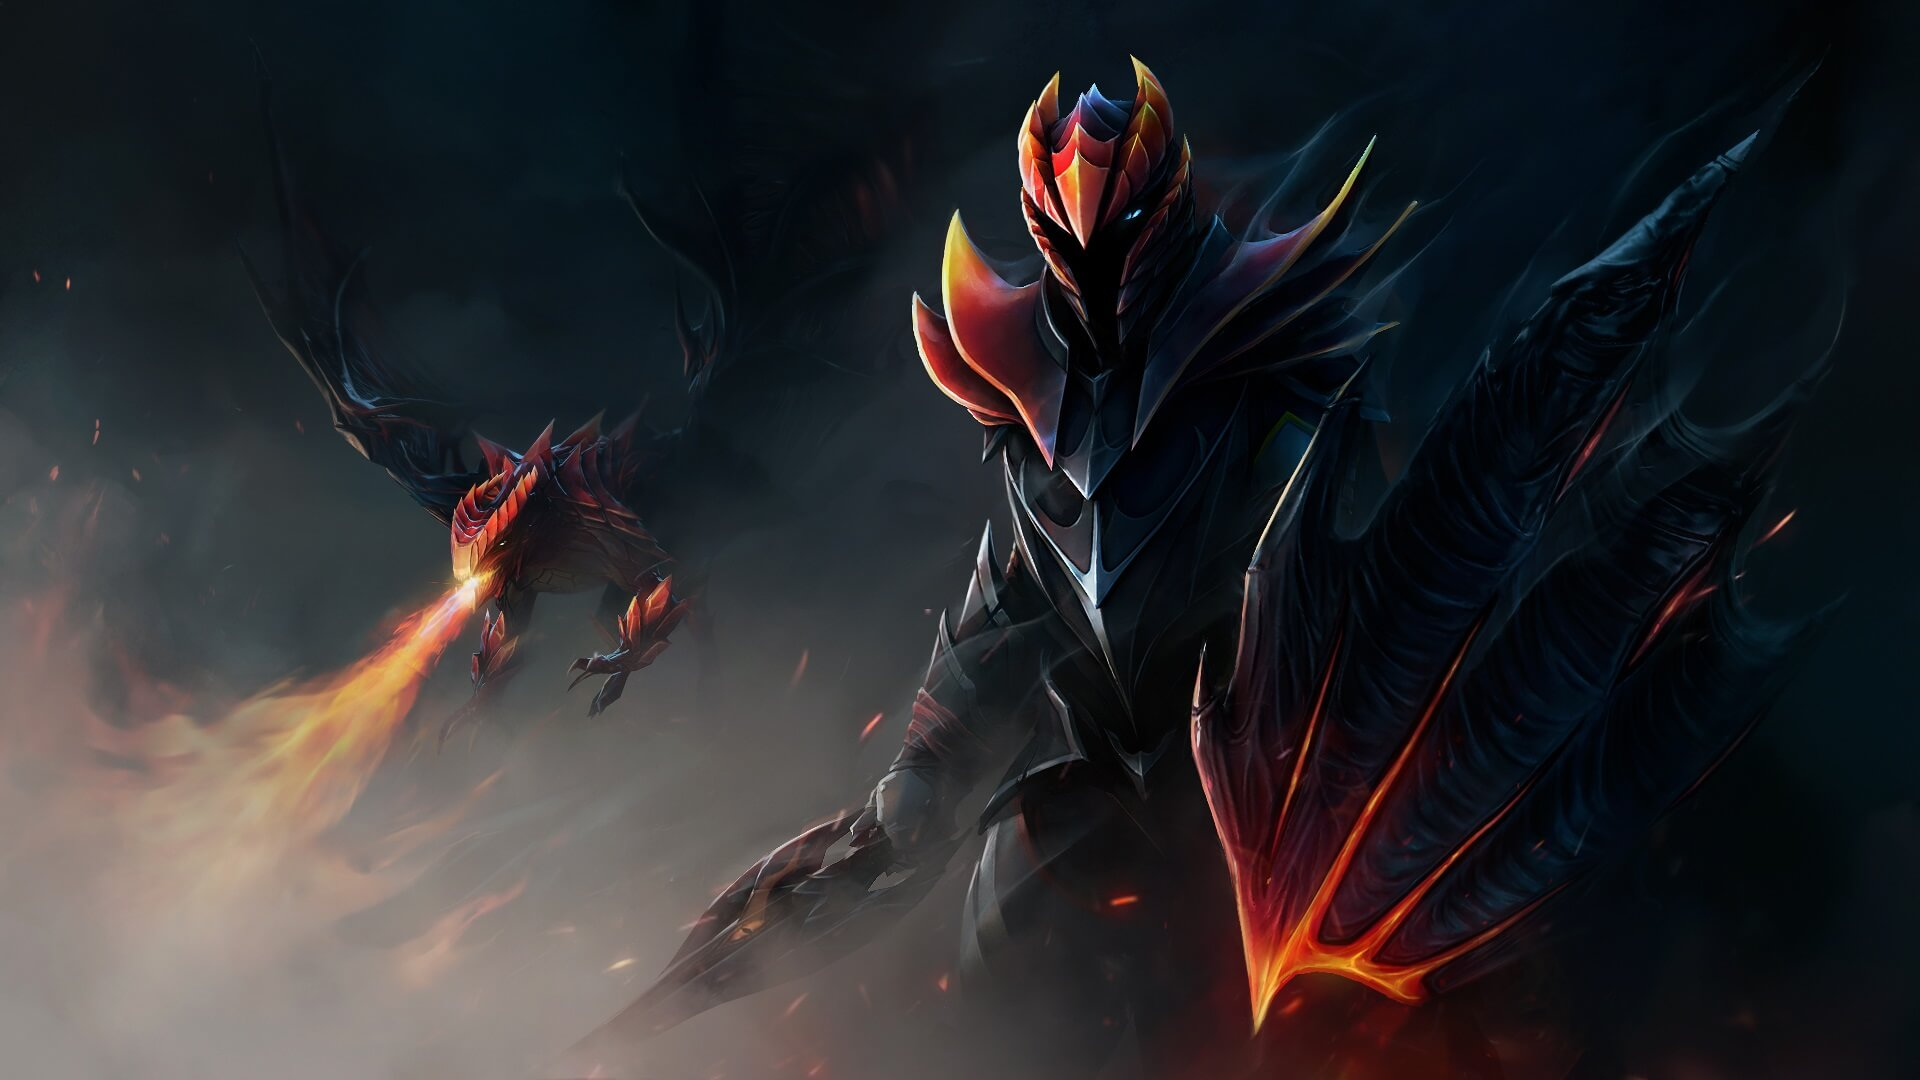 Knight of the Burning Scale loading screen for Dragon Knight - Valve